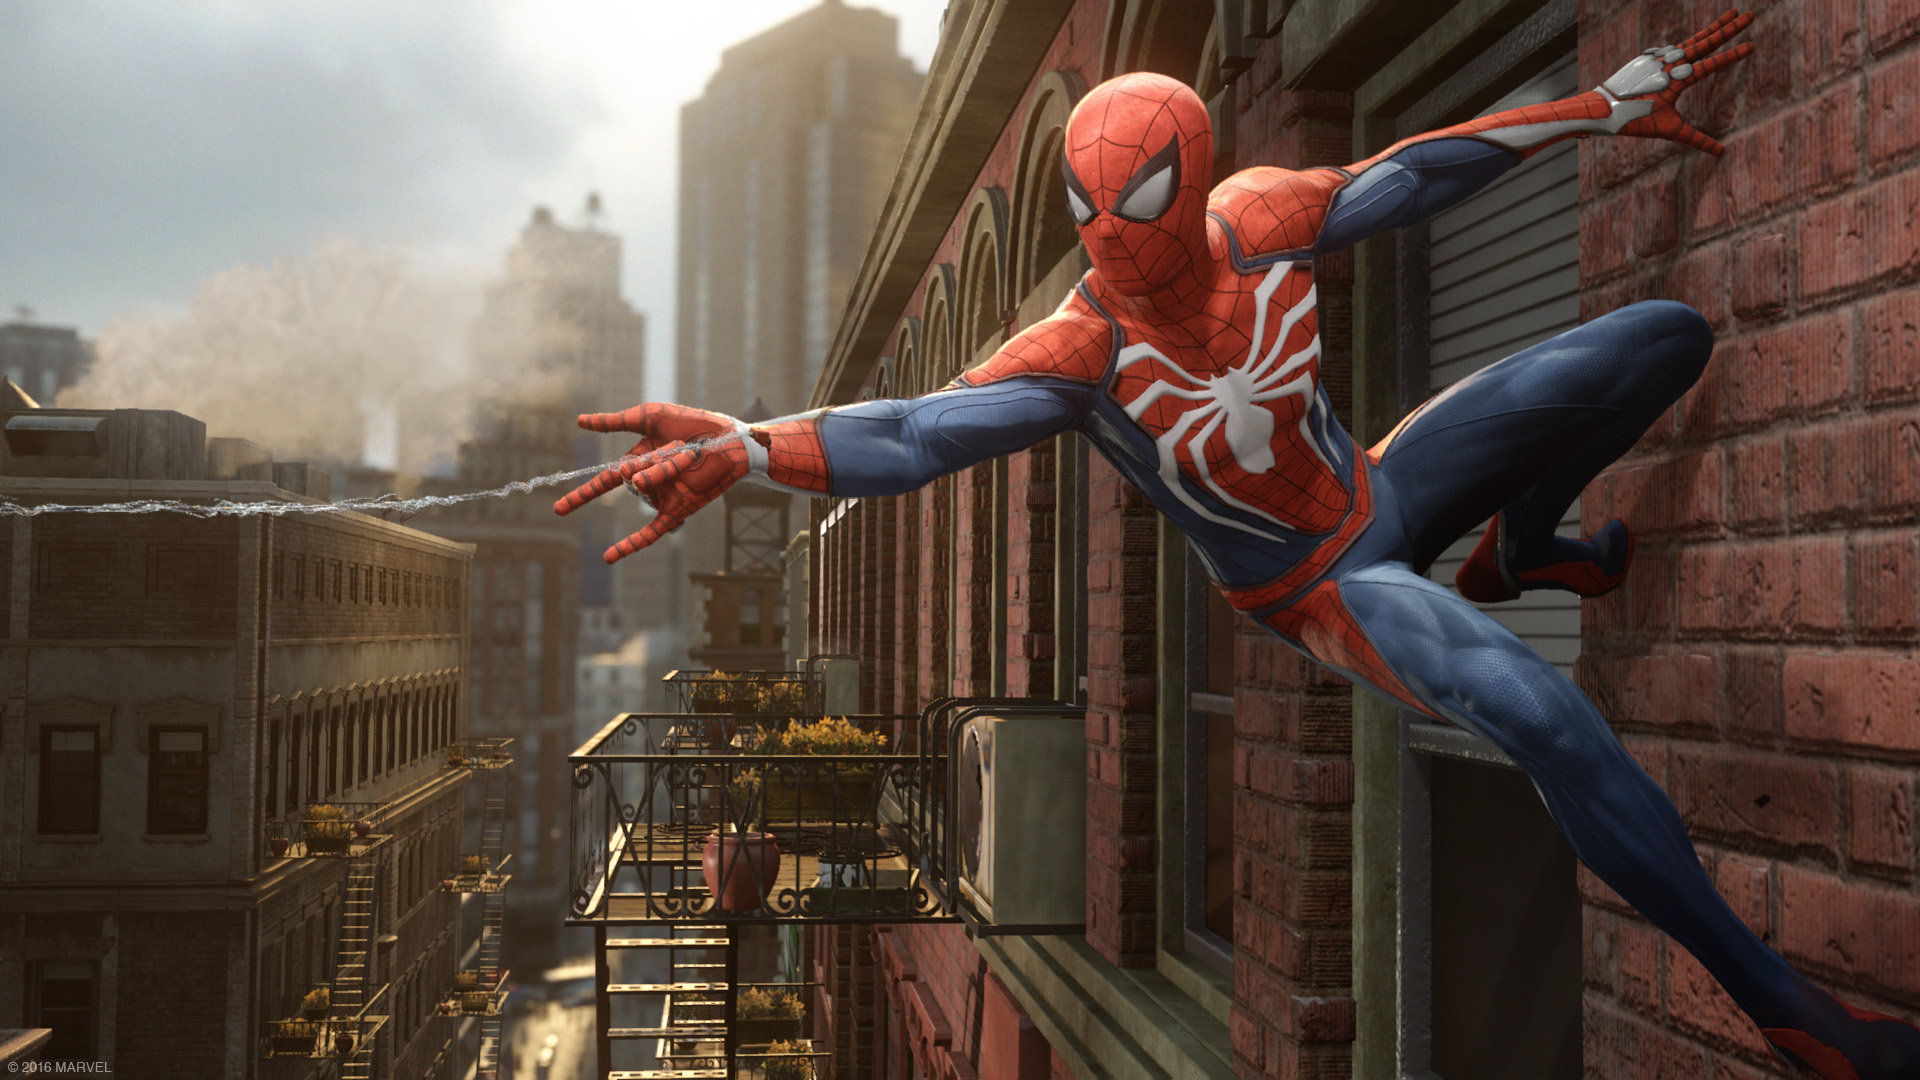 new-spider-man-trailer-is-amazing-and-loaded-with-easter-eggs-social.jpg